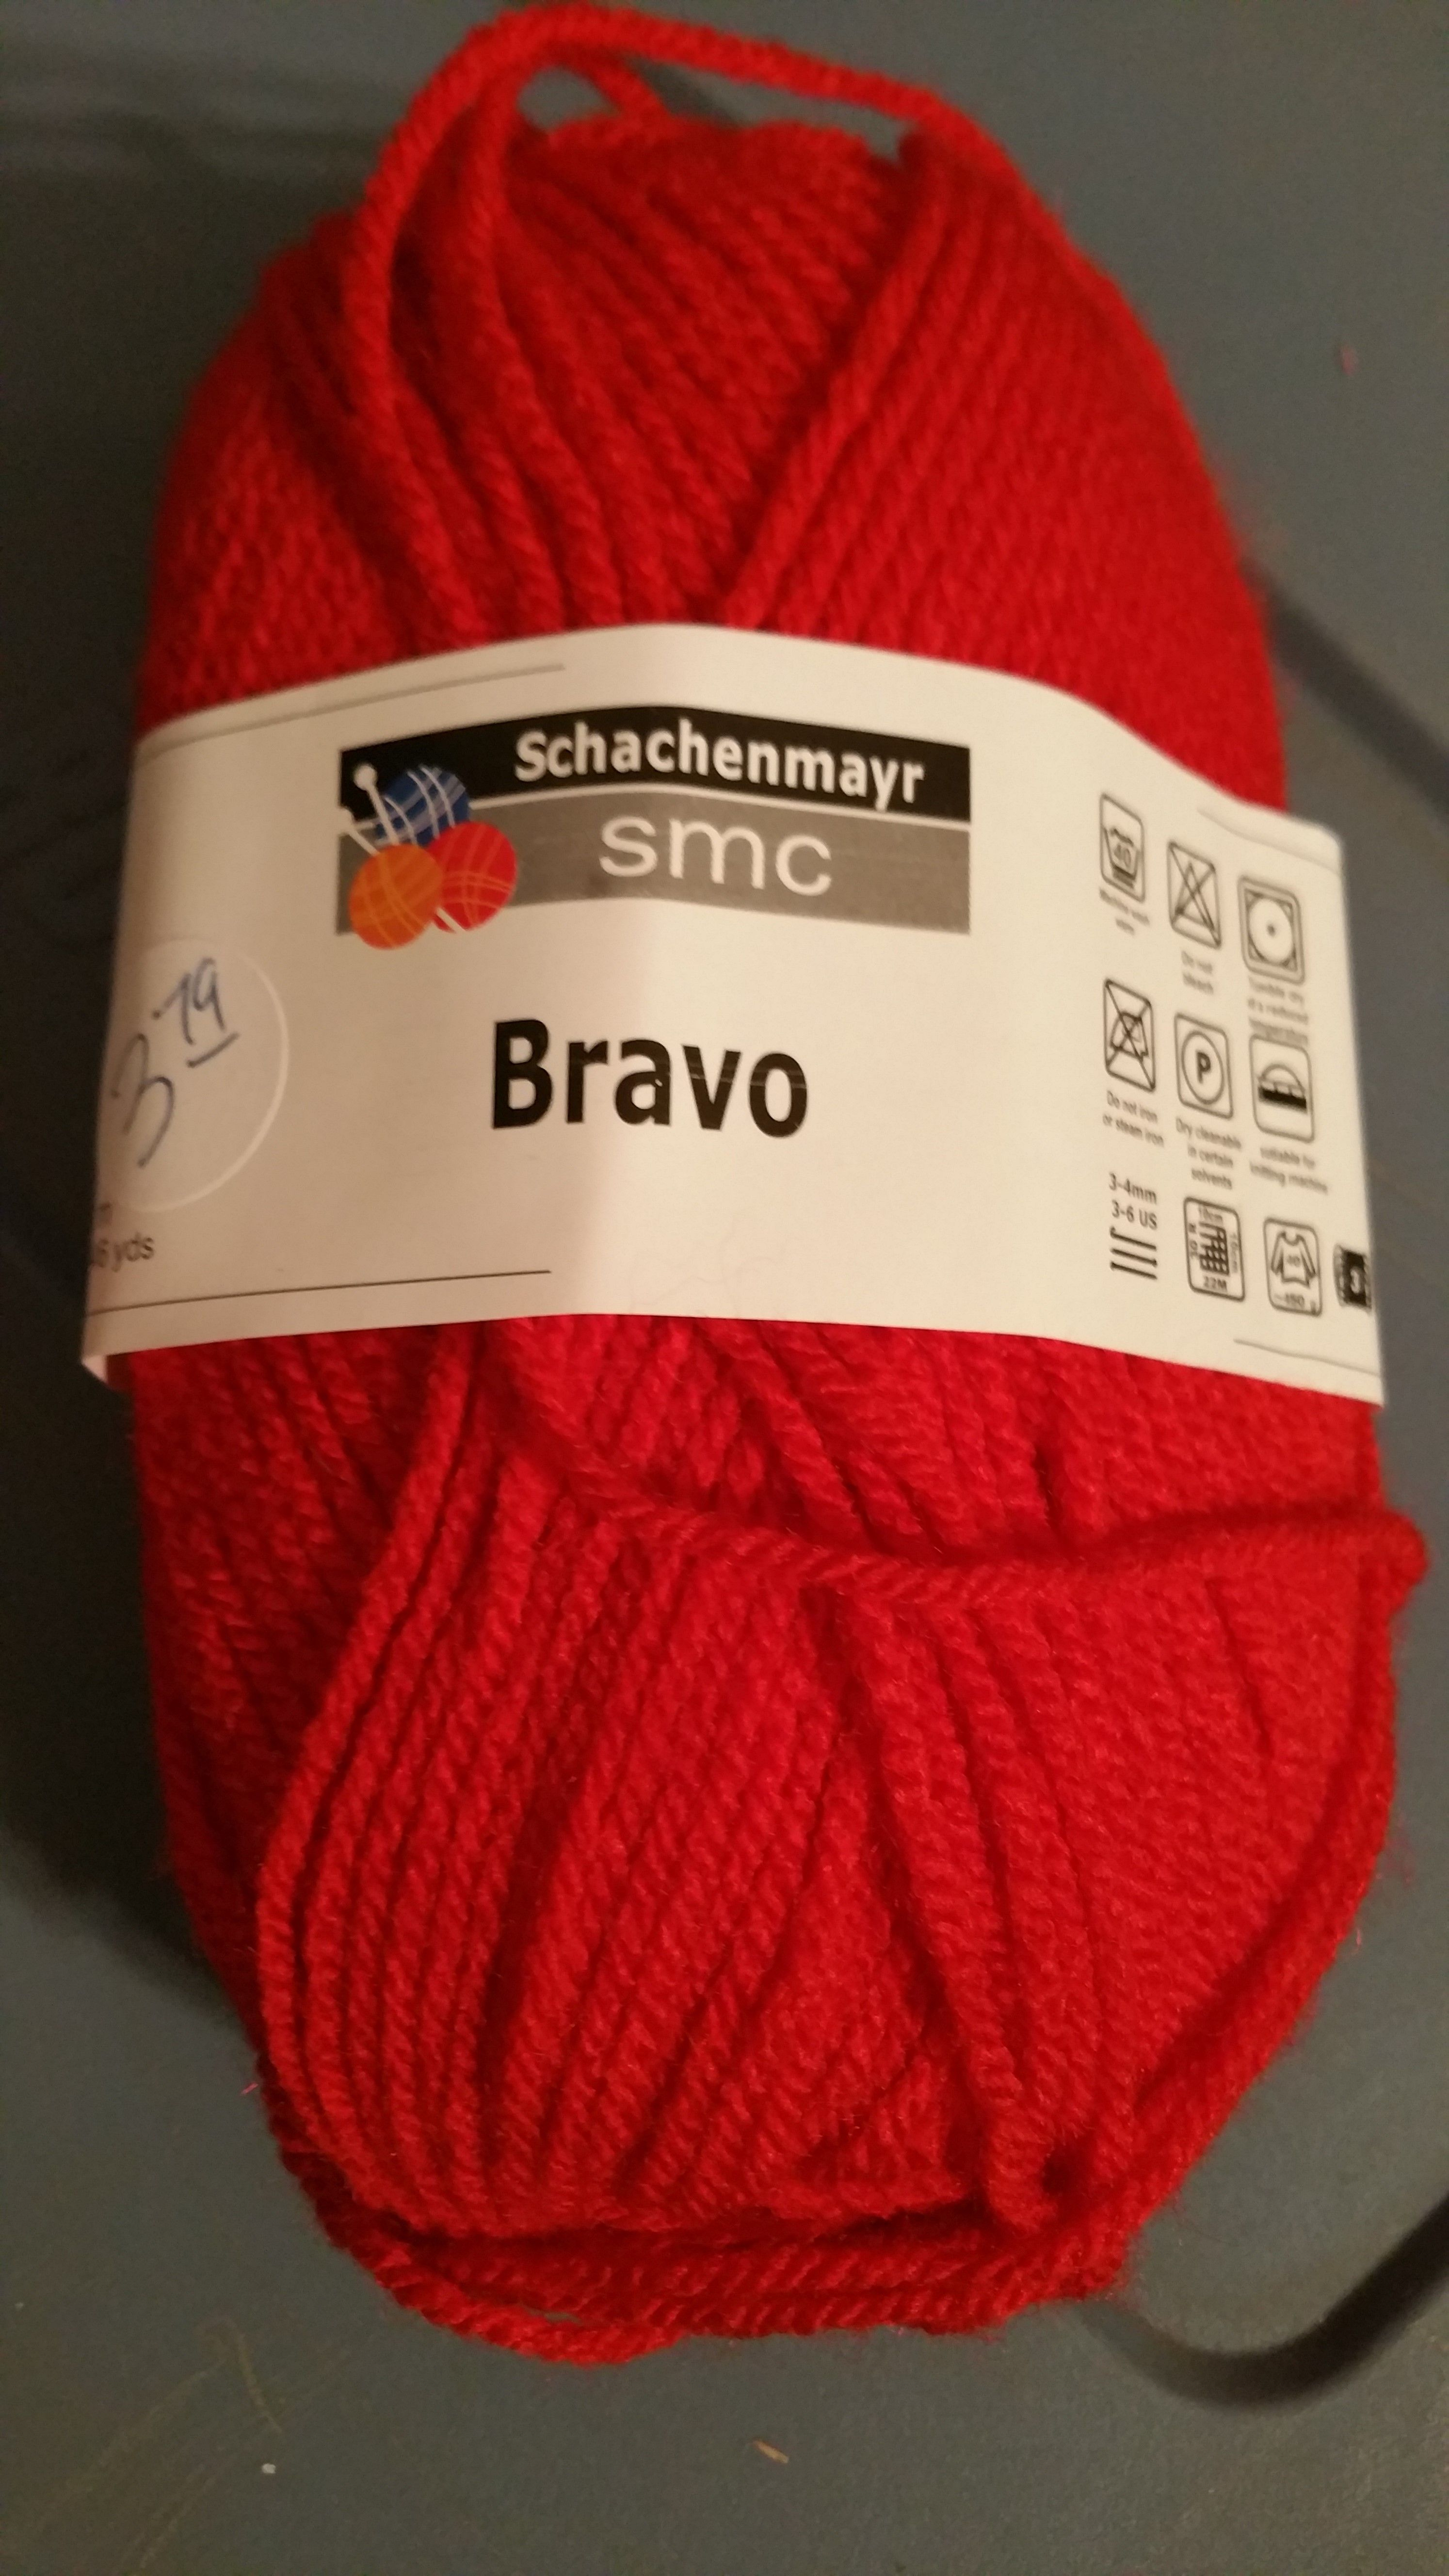 SMC - Schachenmayr - BRAVO color 8221 red - $2.00 per ball plus postage. (10 available). 100% acrylic, machine wash and tumble dry. D/L 304401.